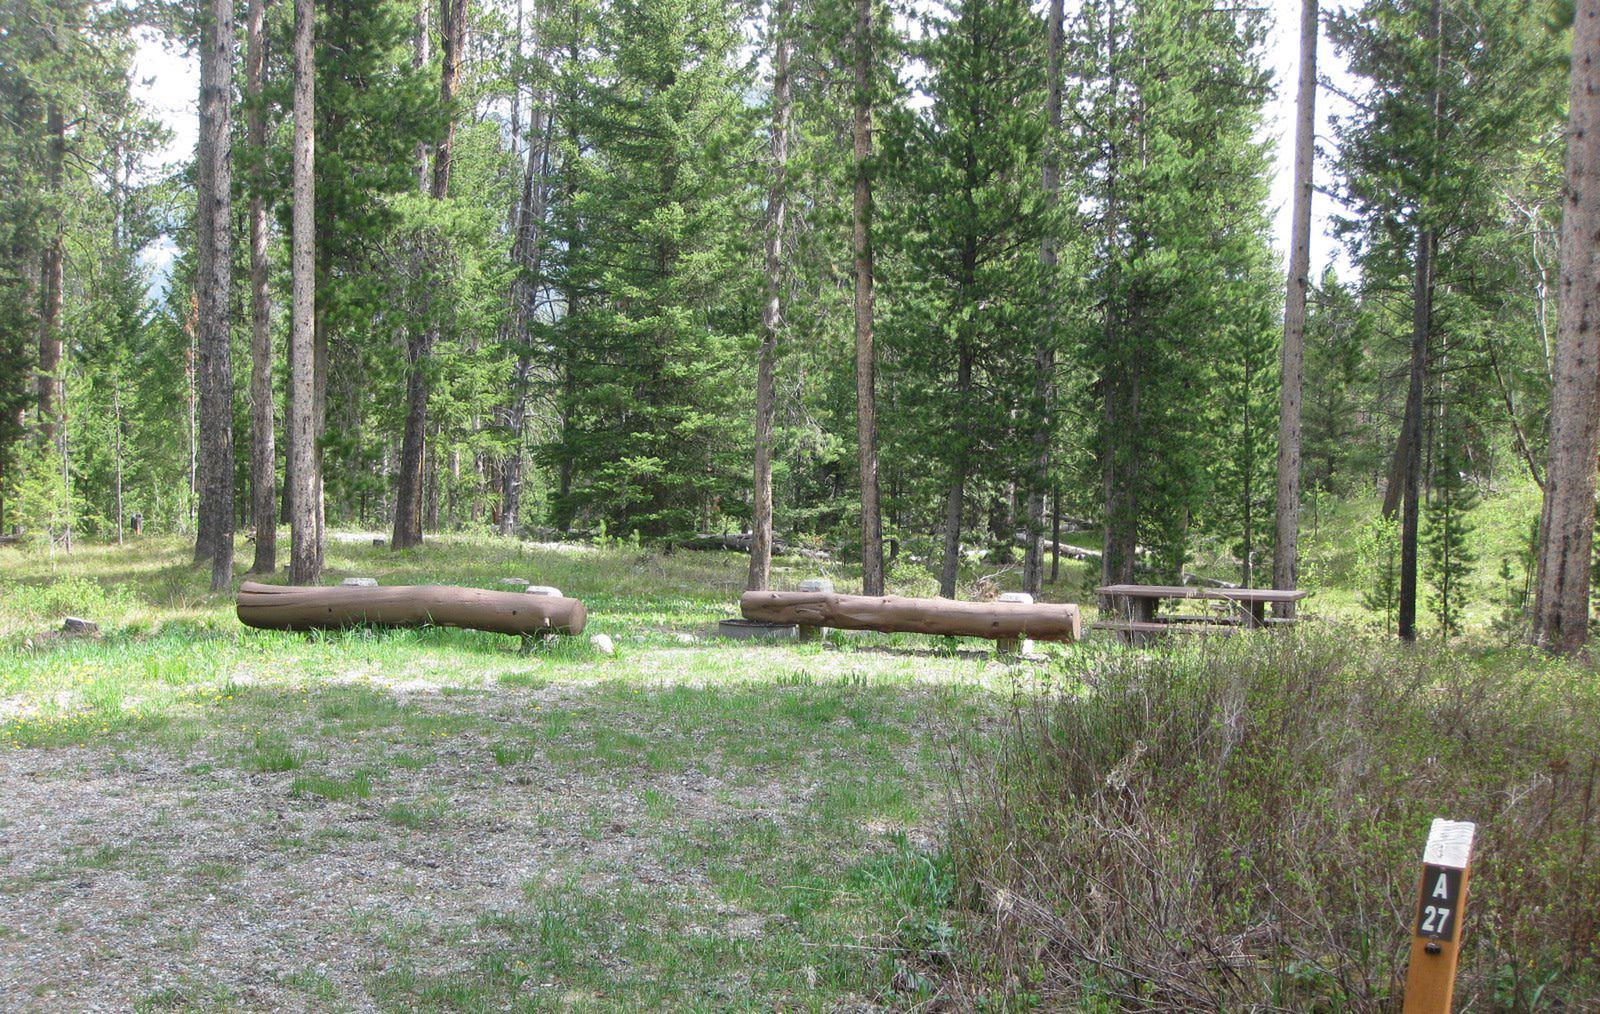 Site A27, campsite surrounded by pine trees, picnic table & fire ringSite A27